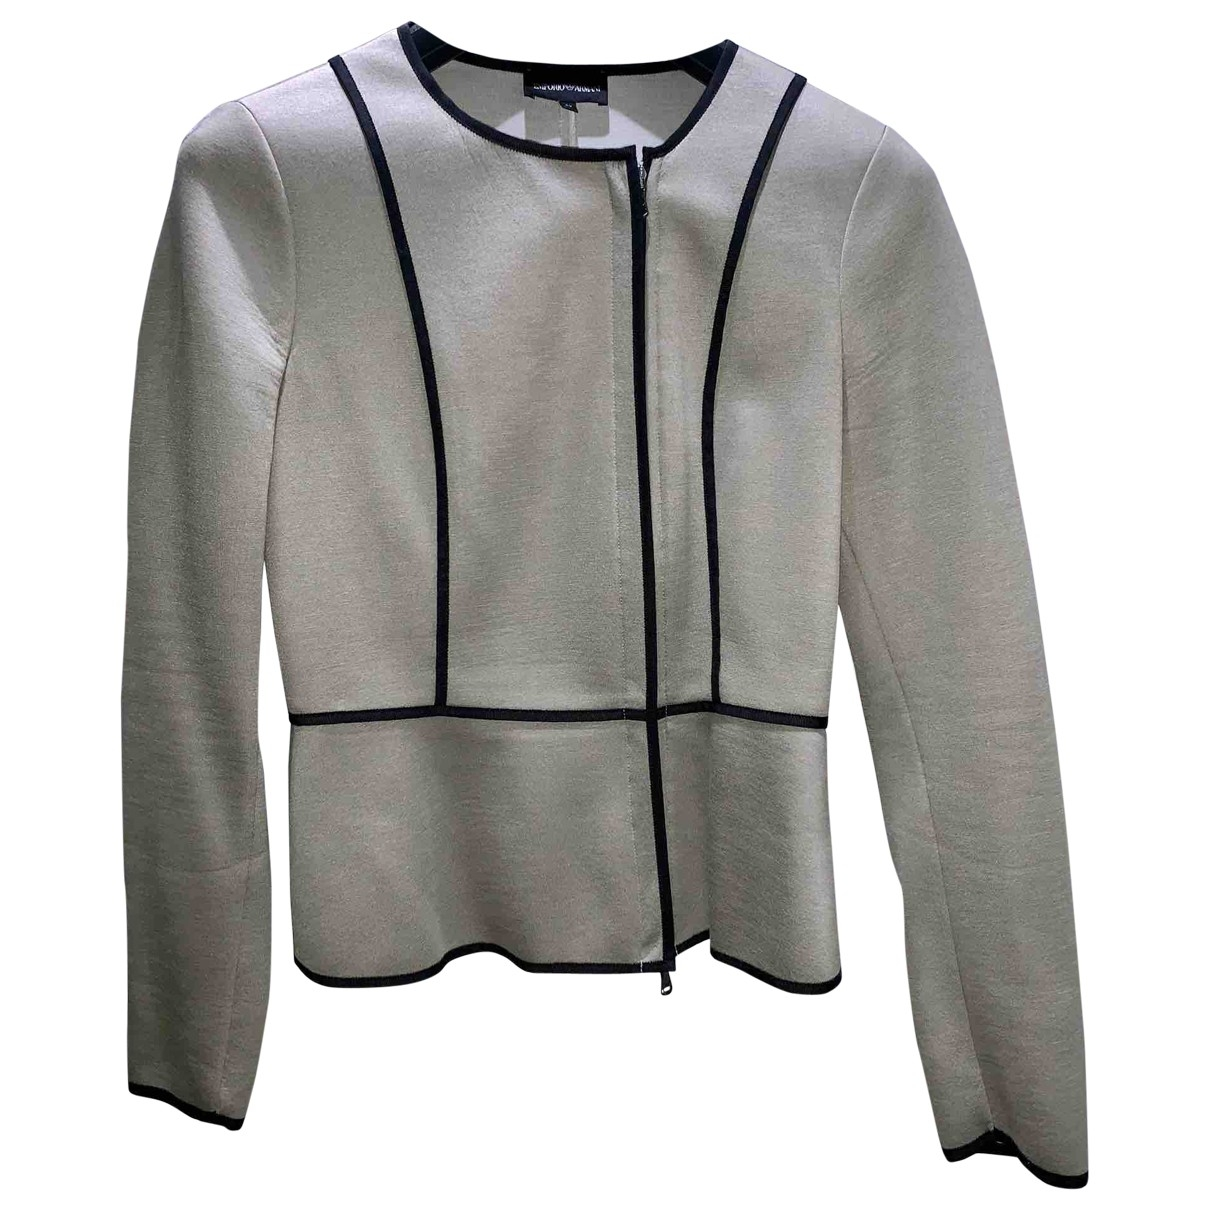 Emporio Armani \N Beige jacket for Women 42 FR